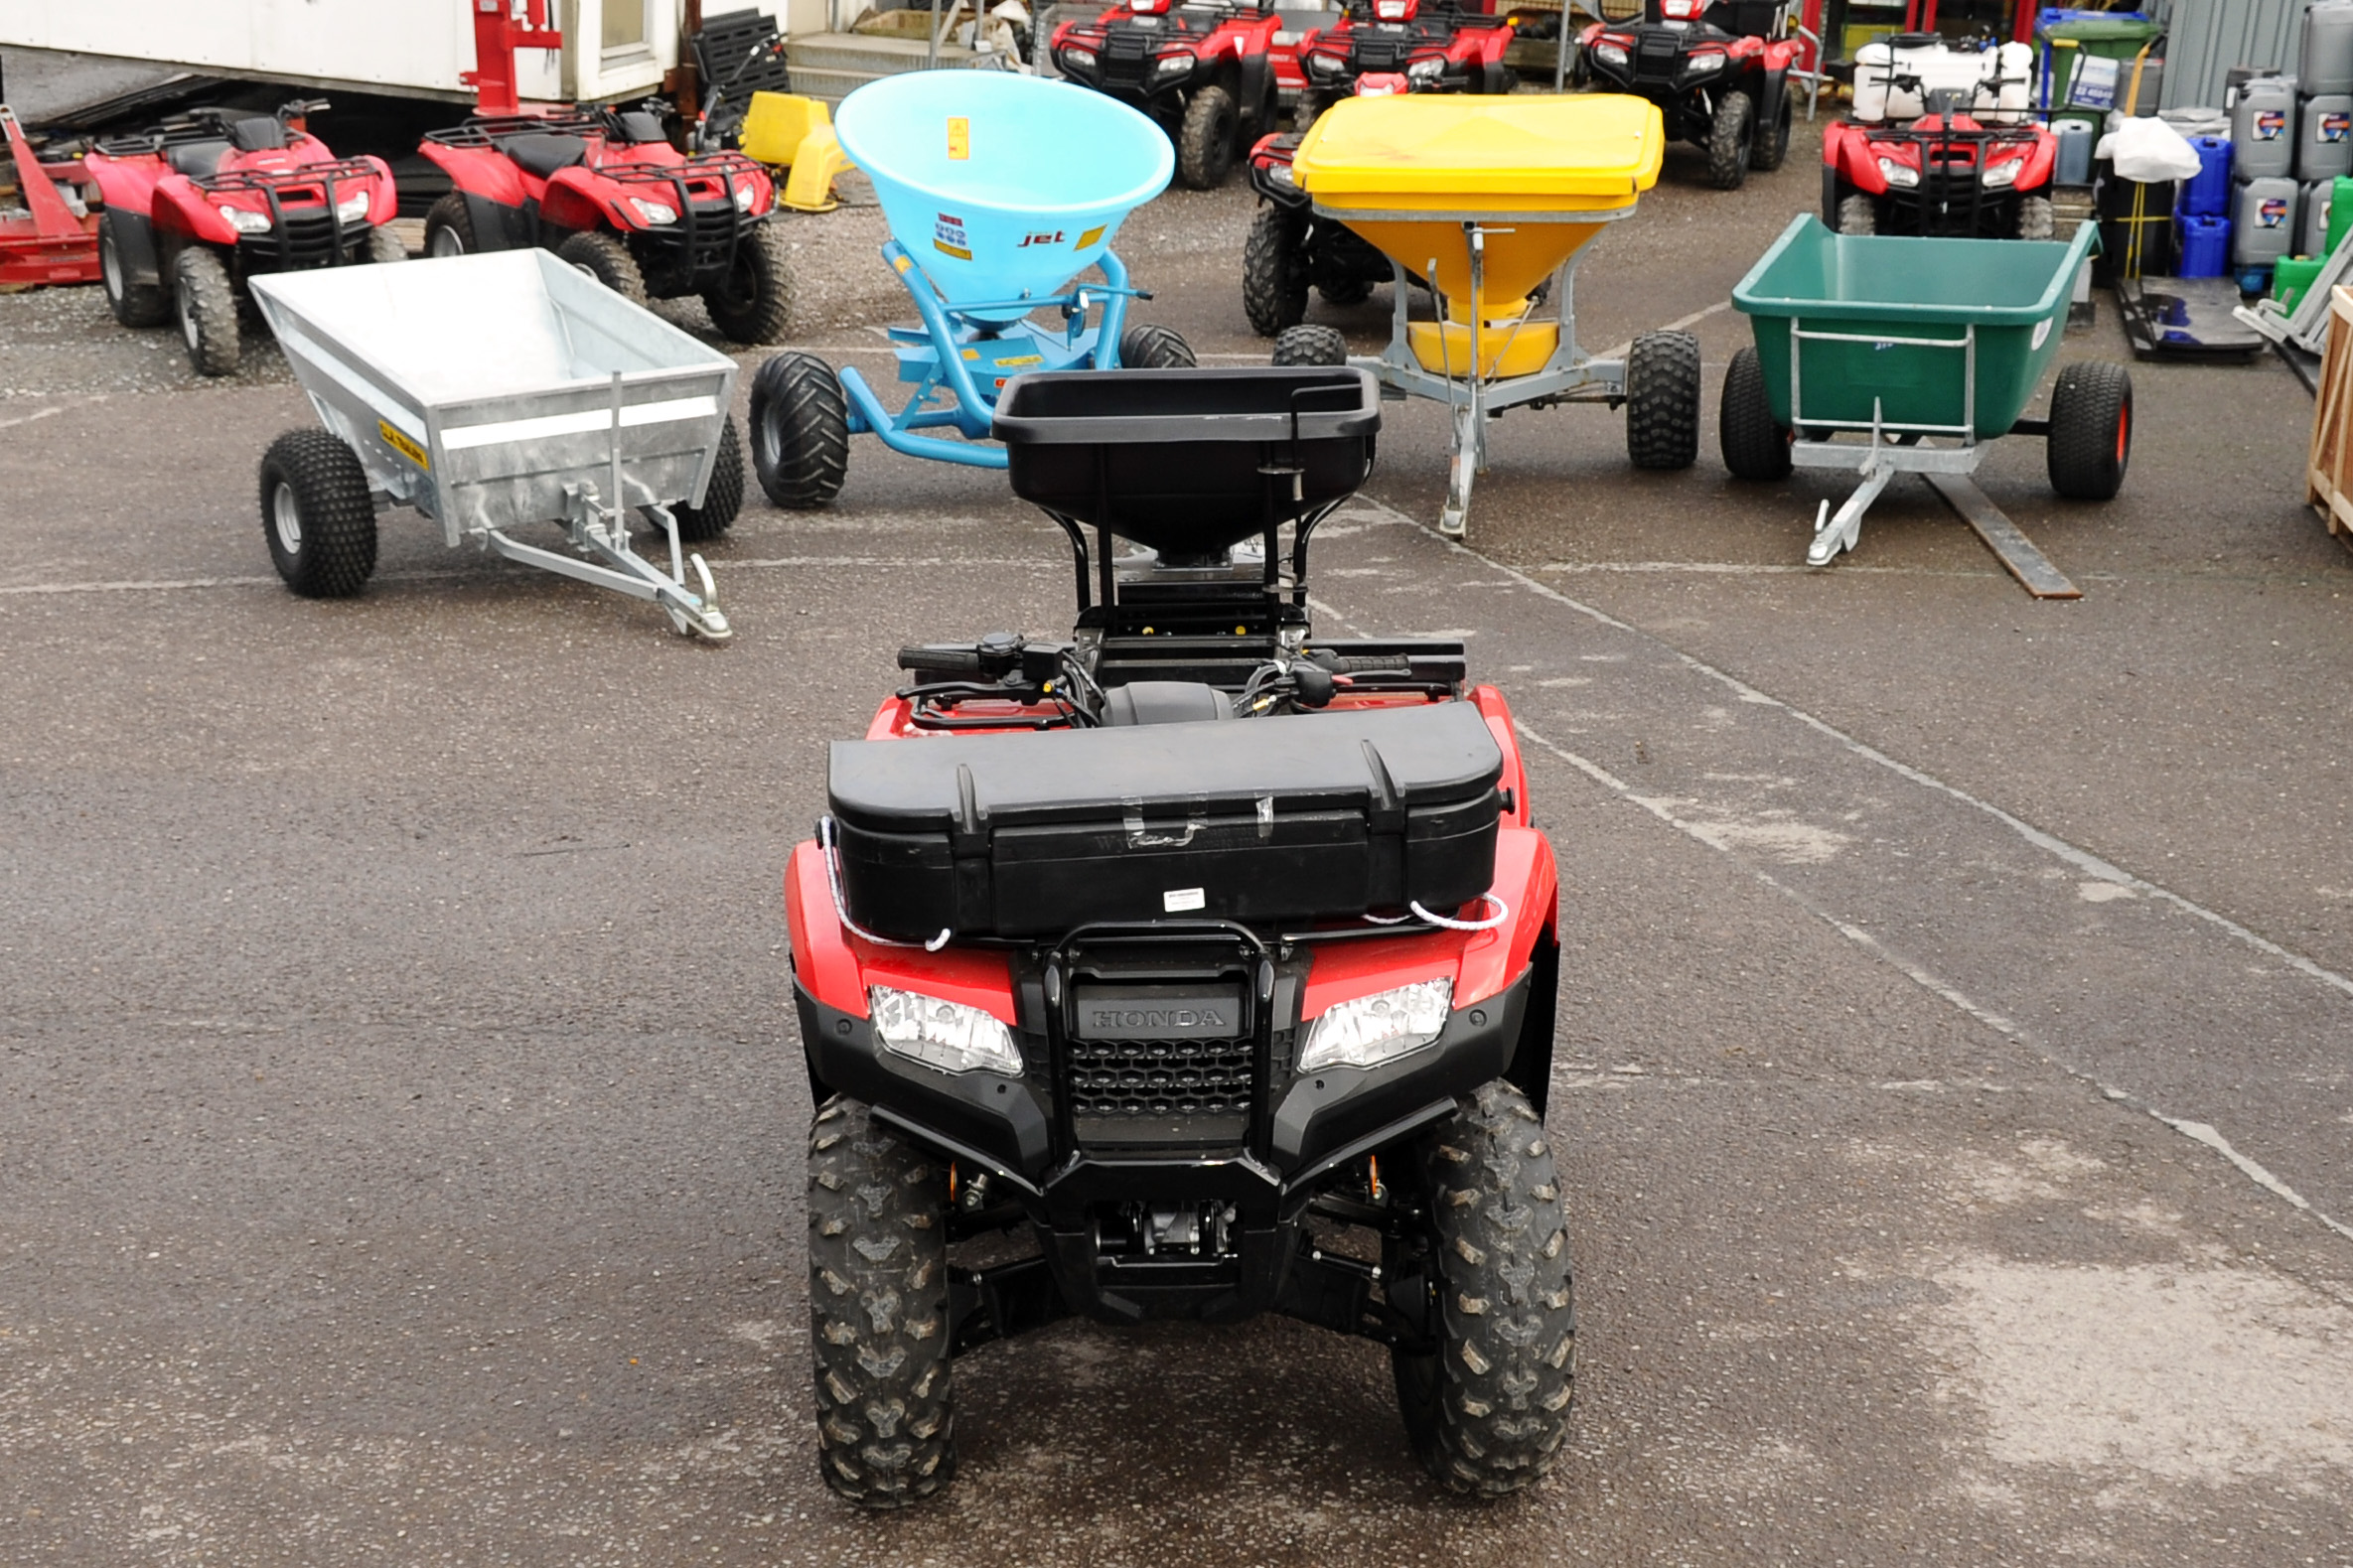 See why this quad was booted up with 'duals' at the rear